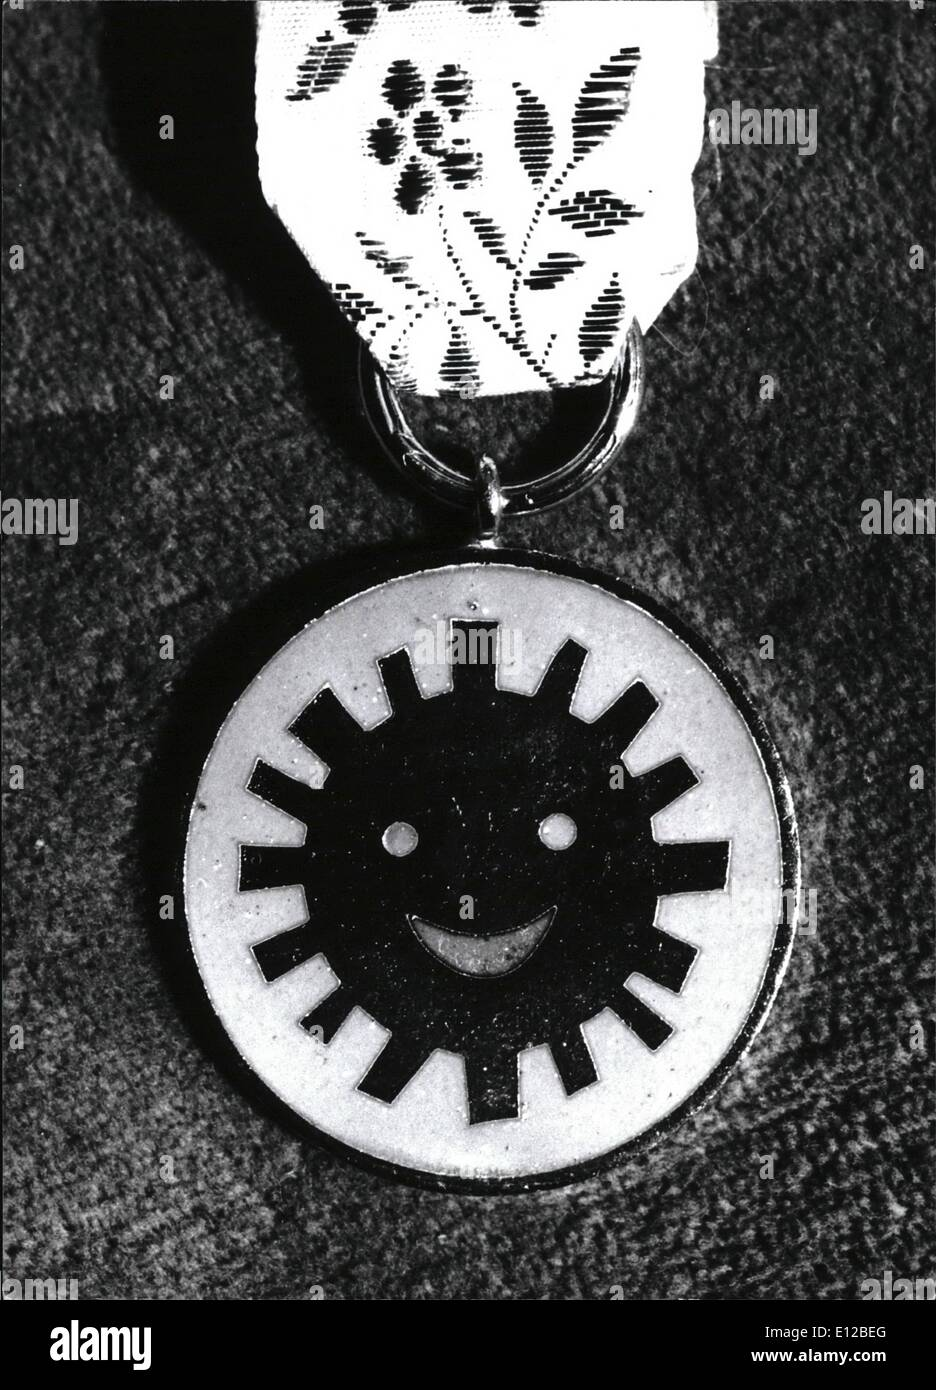 Dec. 09, 2011 - The history of the medal begin in 1968. polish medal of smile is the only one the world over proposal and awarded by children. - Stock Image